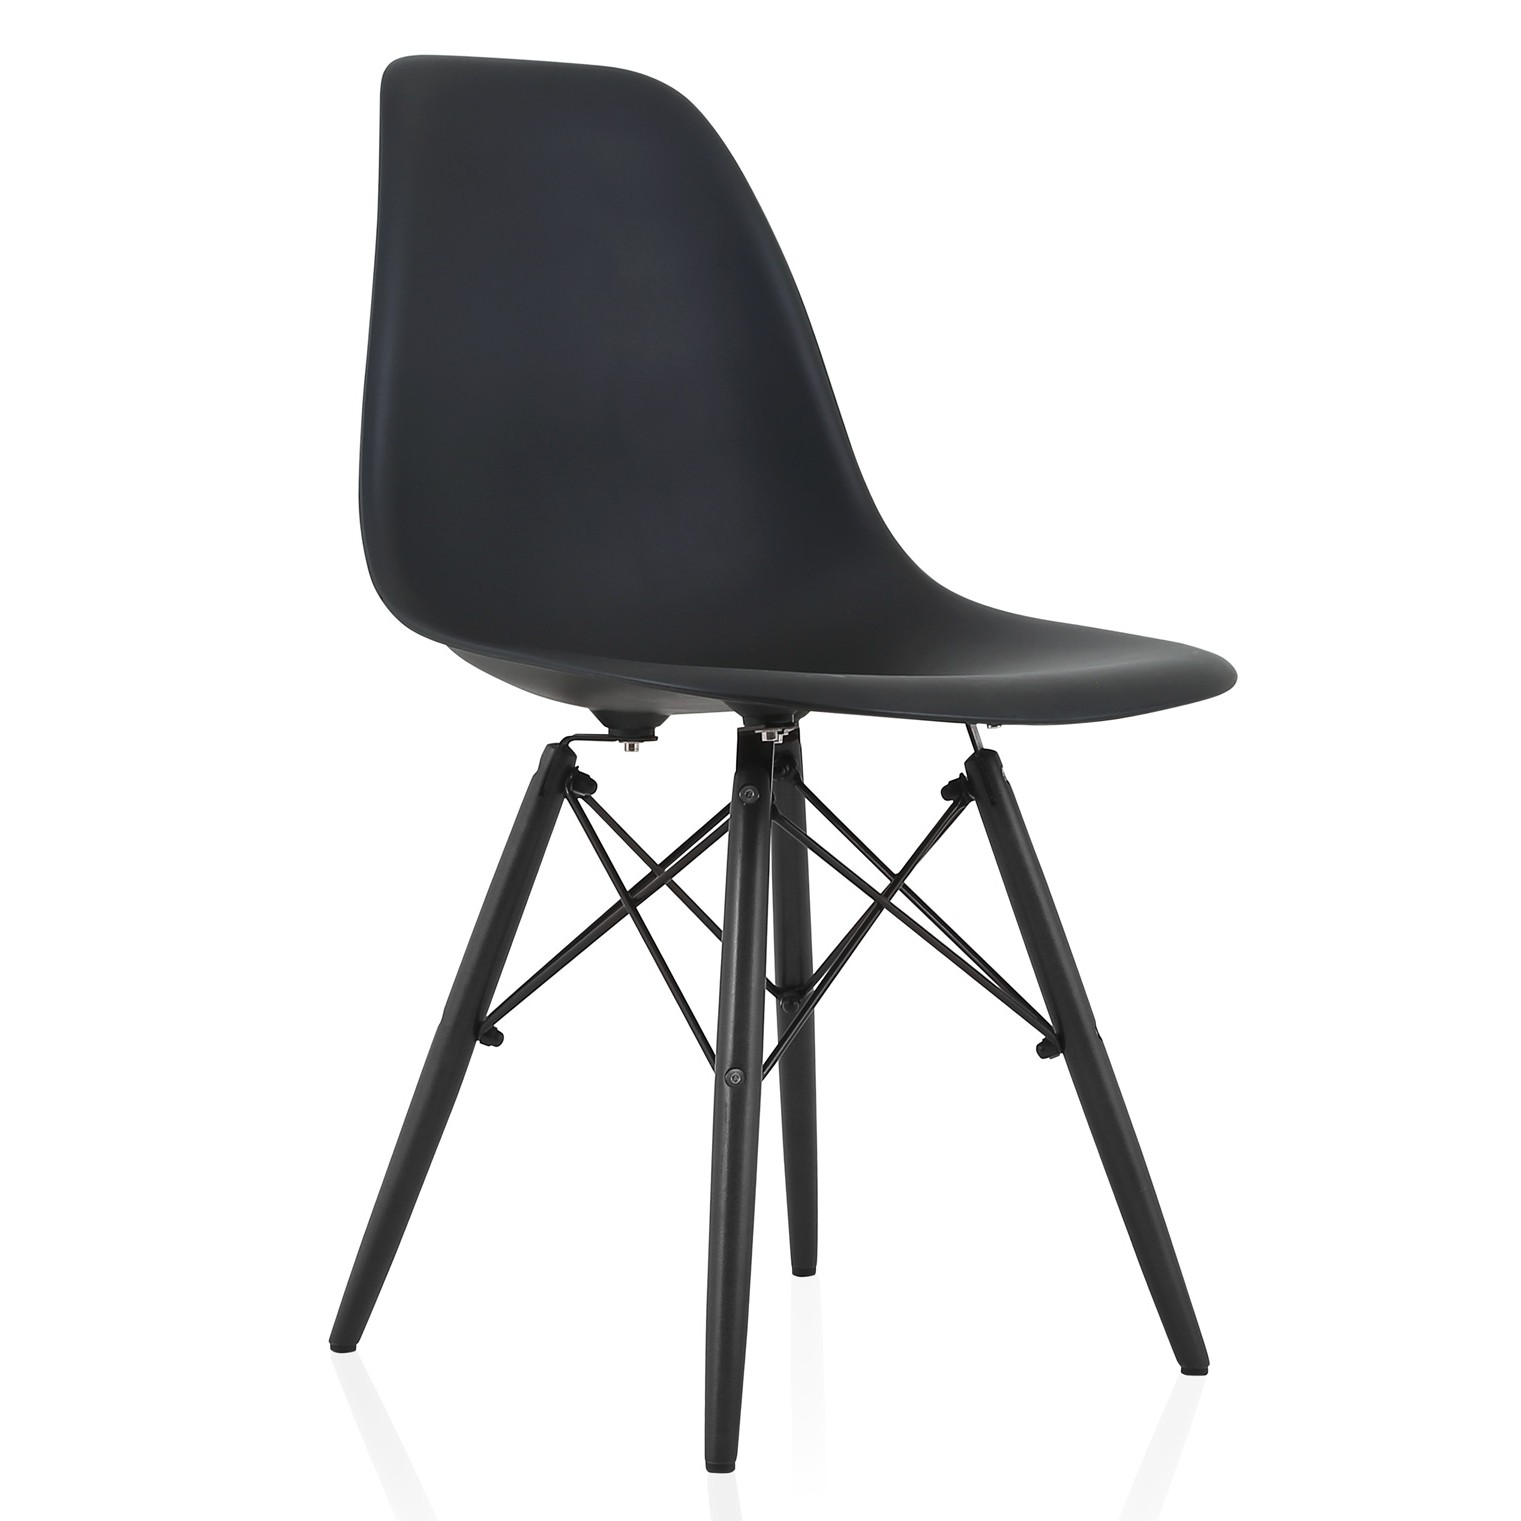 black plastic chair with wooden legs back design names eames style dsw molded dining side